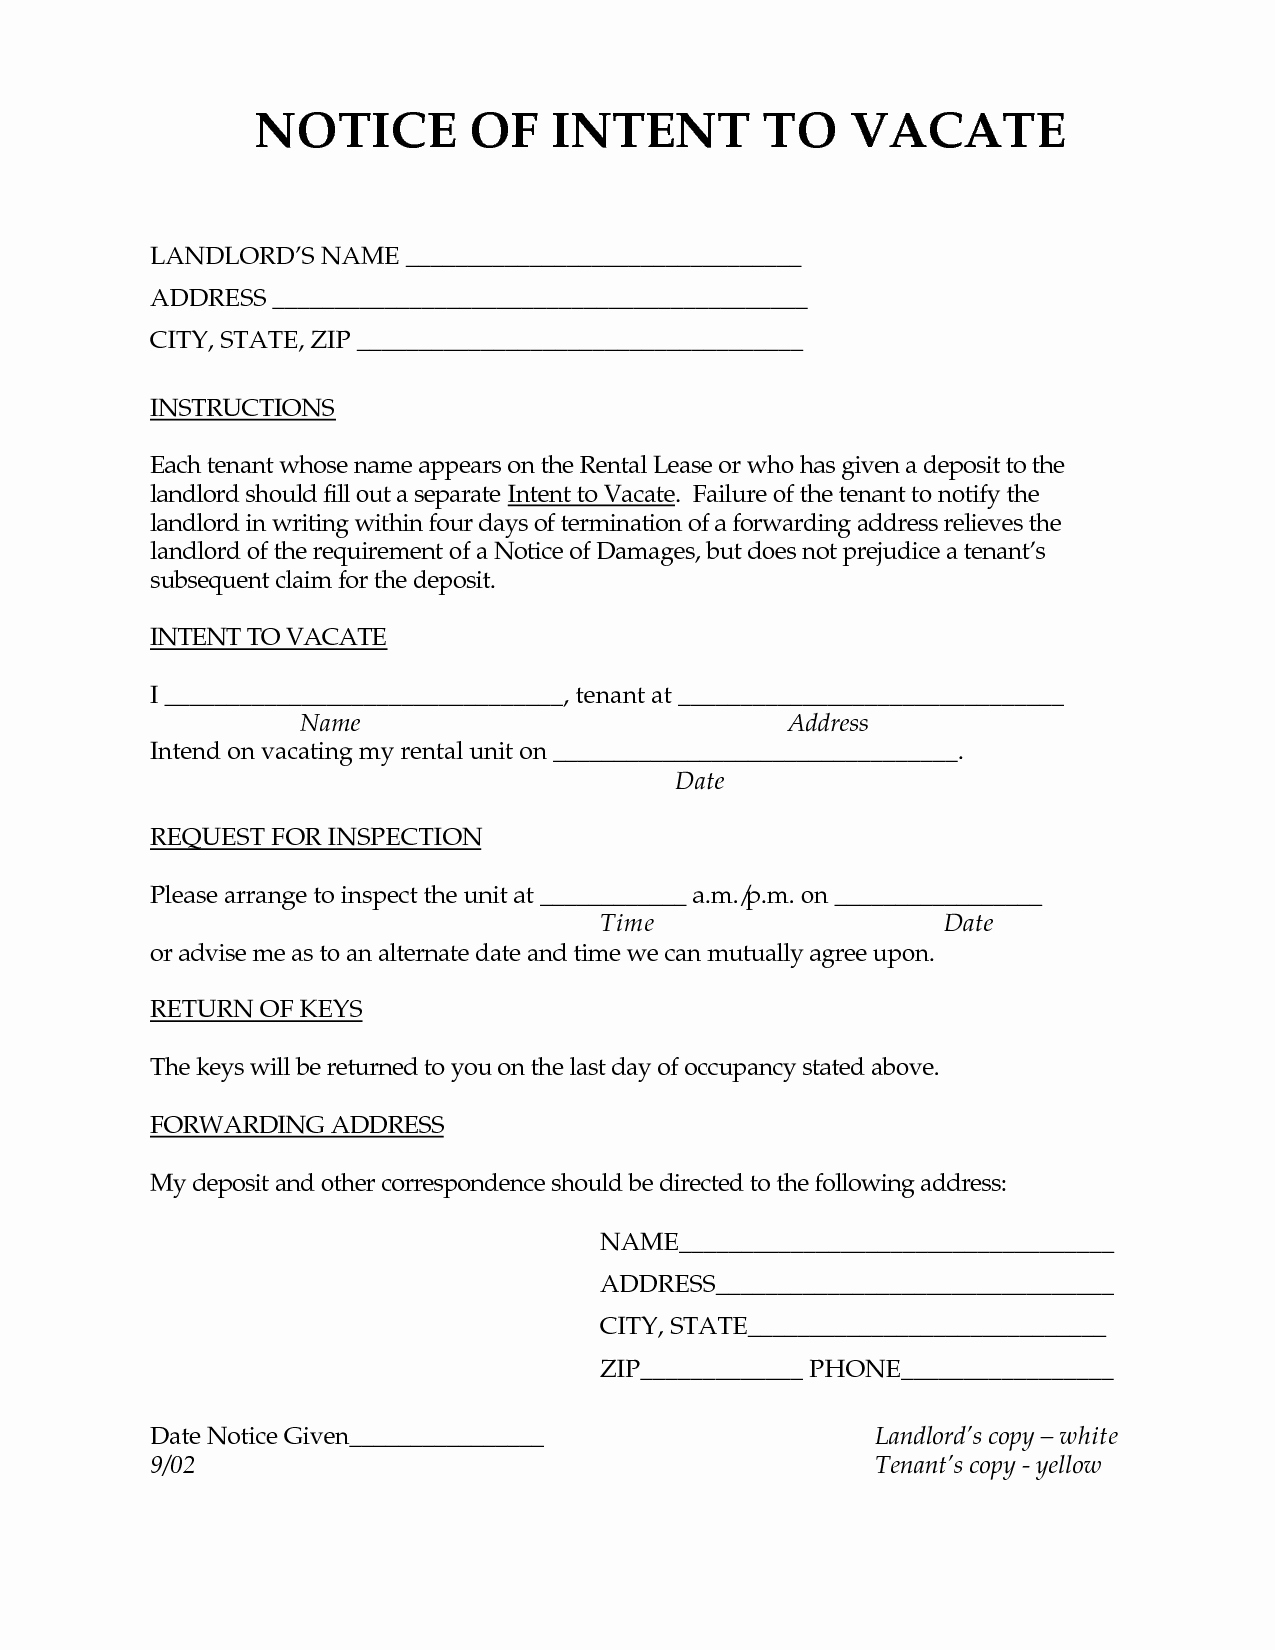 Notice to Vacate Apartment Best Of Notice to Vacate Apartment Letter Template Samples